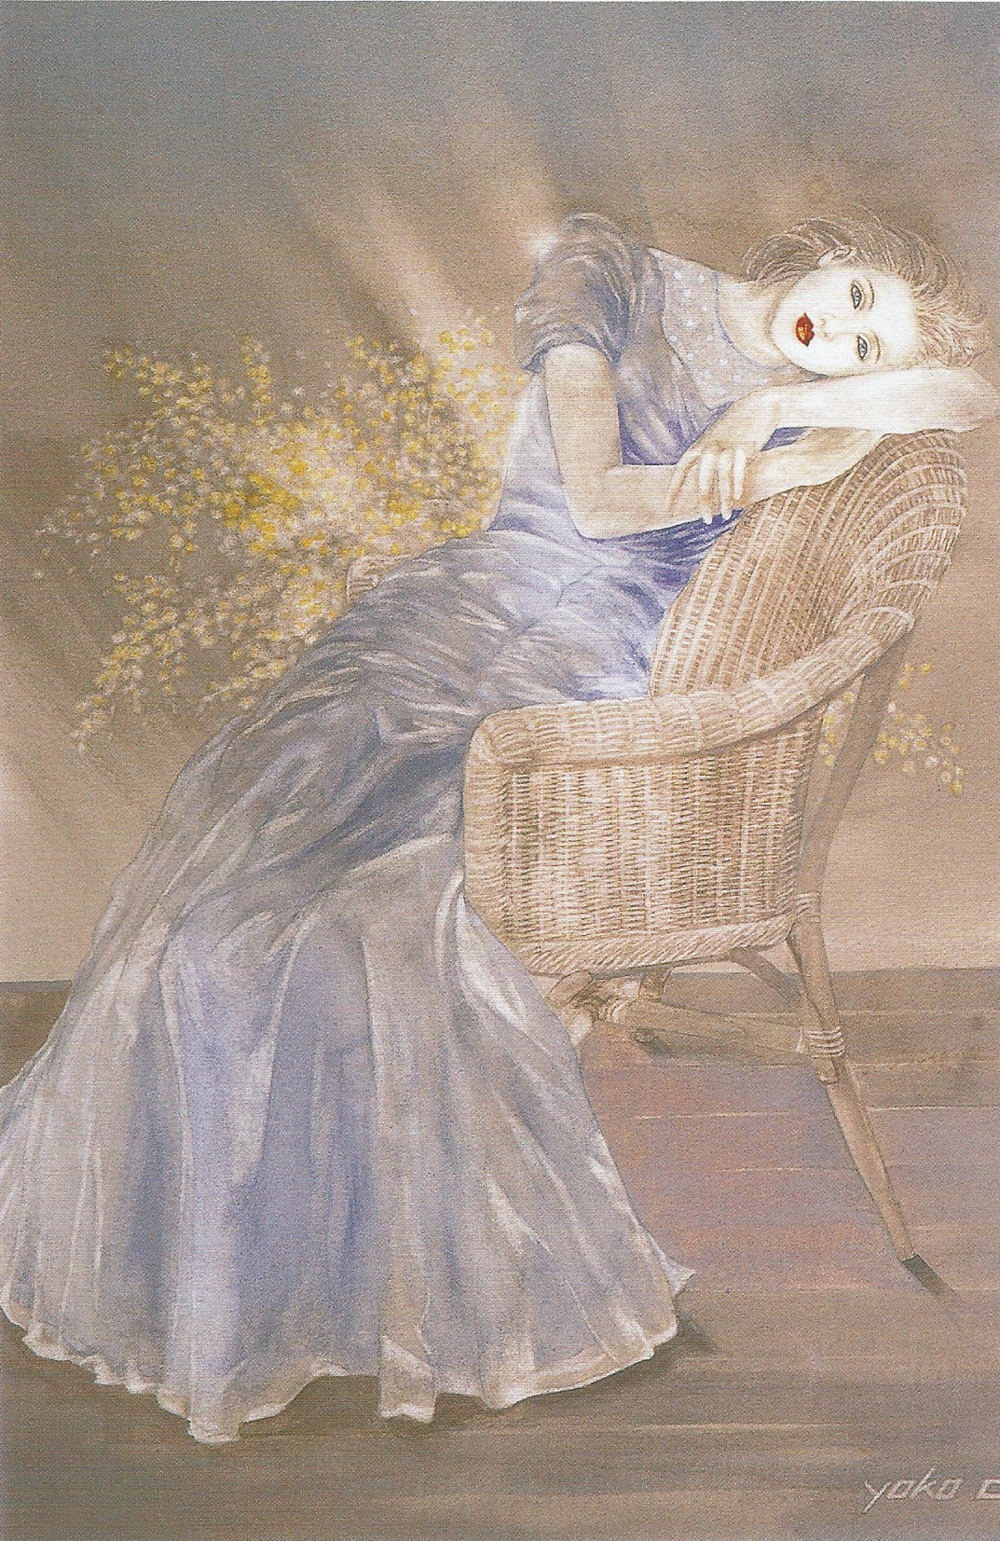 "Yoko Nakagawa: In the Light,   Watercolor on paper, 19.2"" x 14"", 1998"